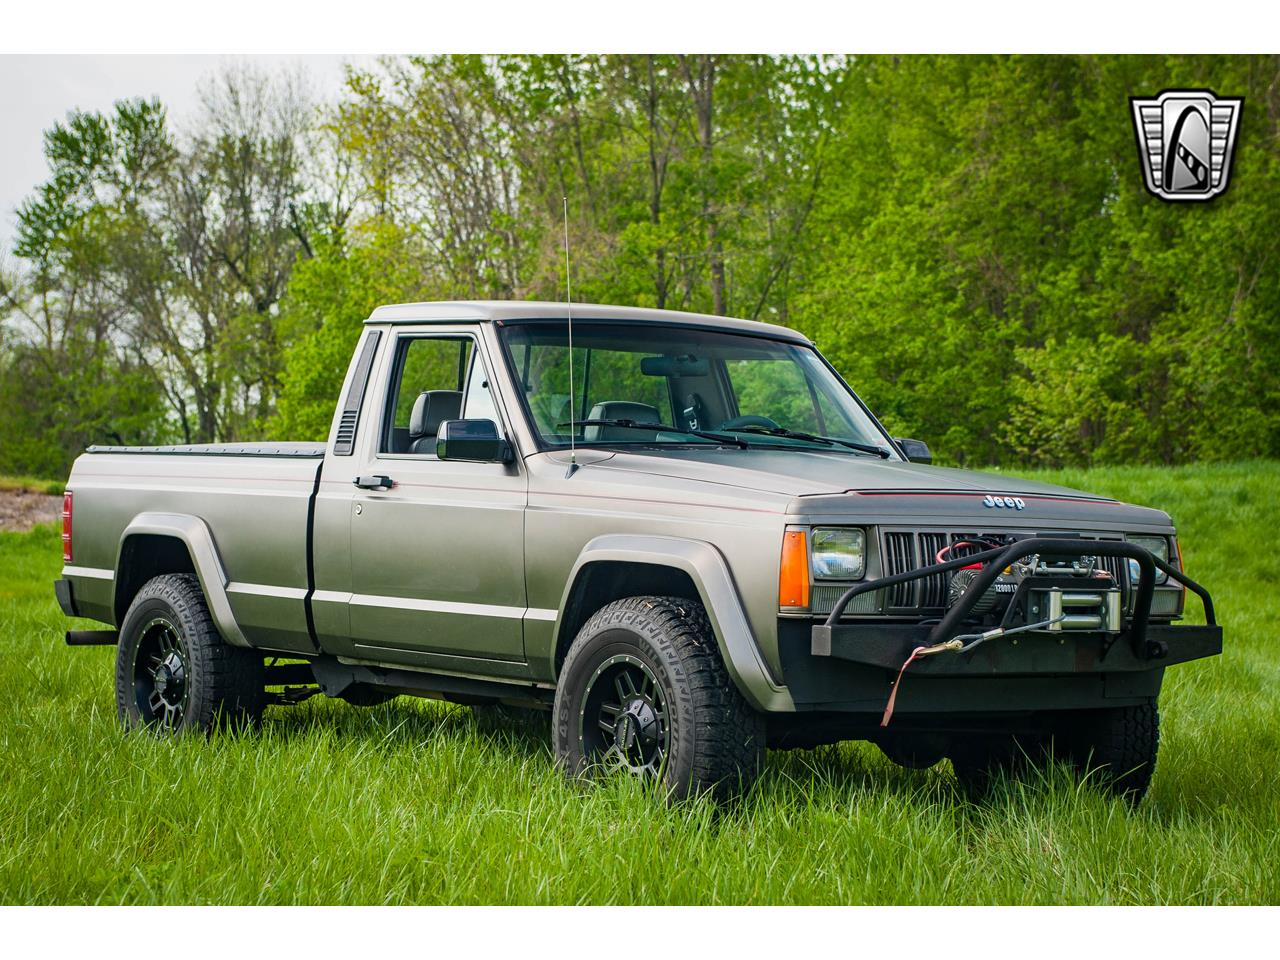 Large Picture of '90 Comanche located in O'Fallon Illinois Offered by Gateway Classic Cars - St. Louis - QB8P